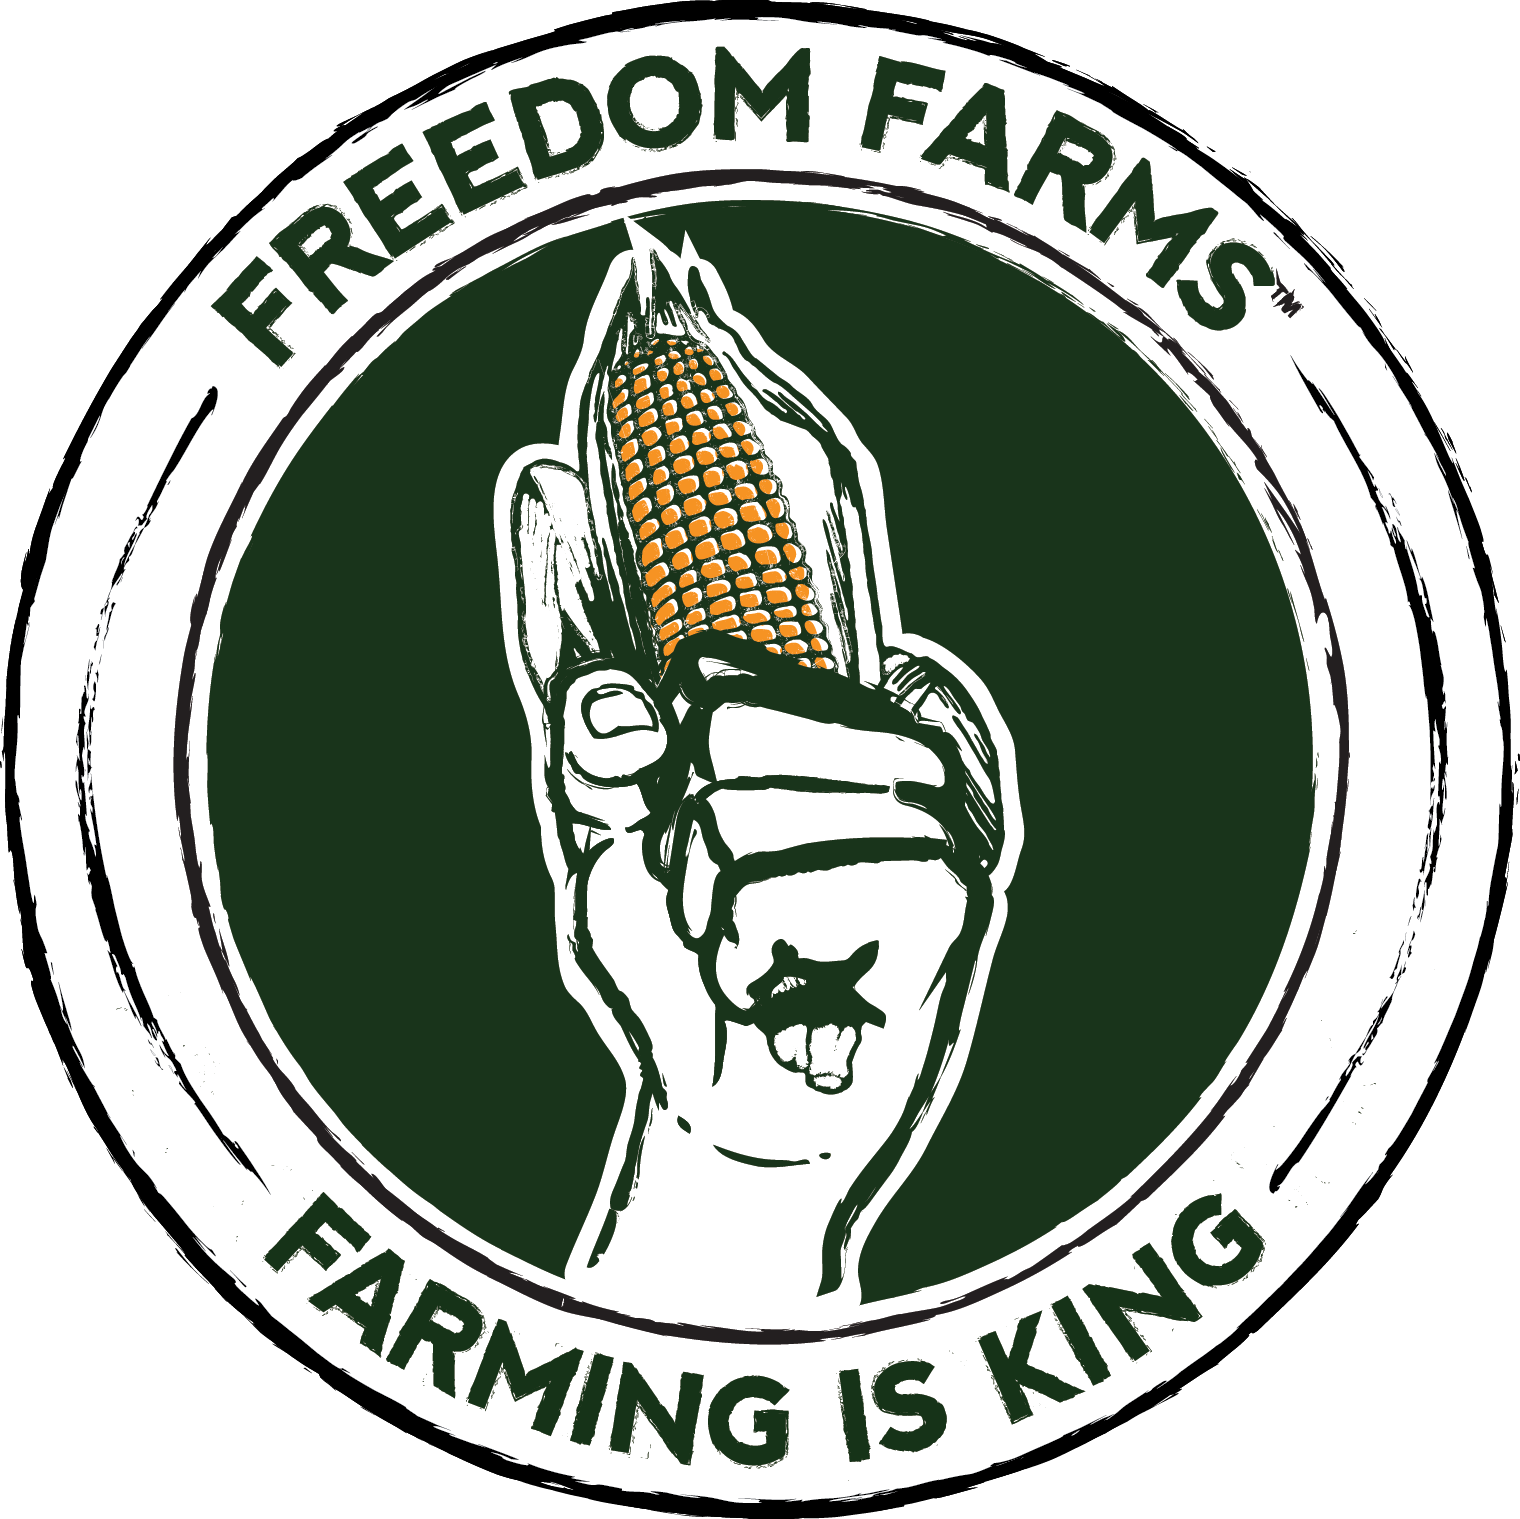 freedom-farms.png